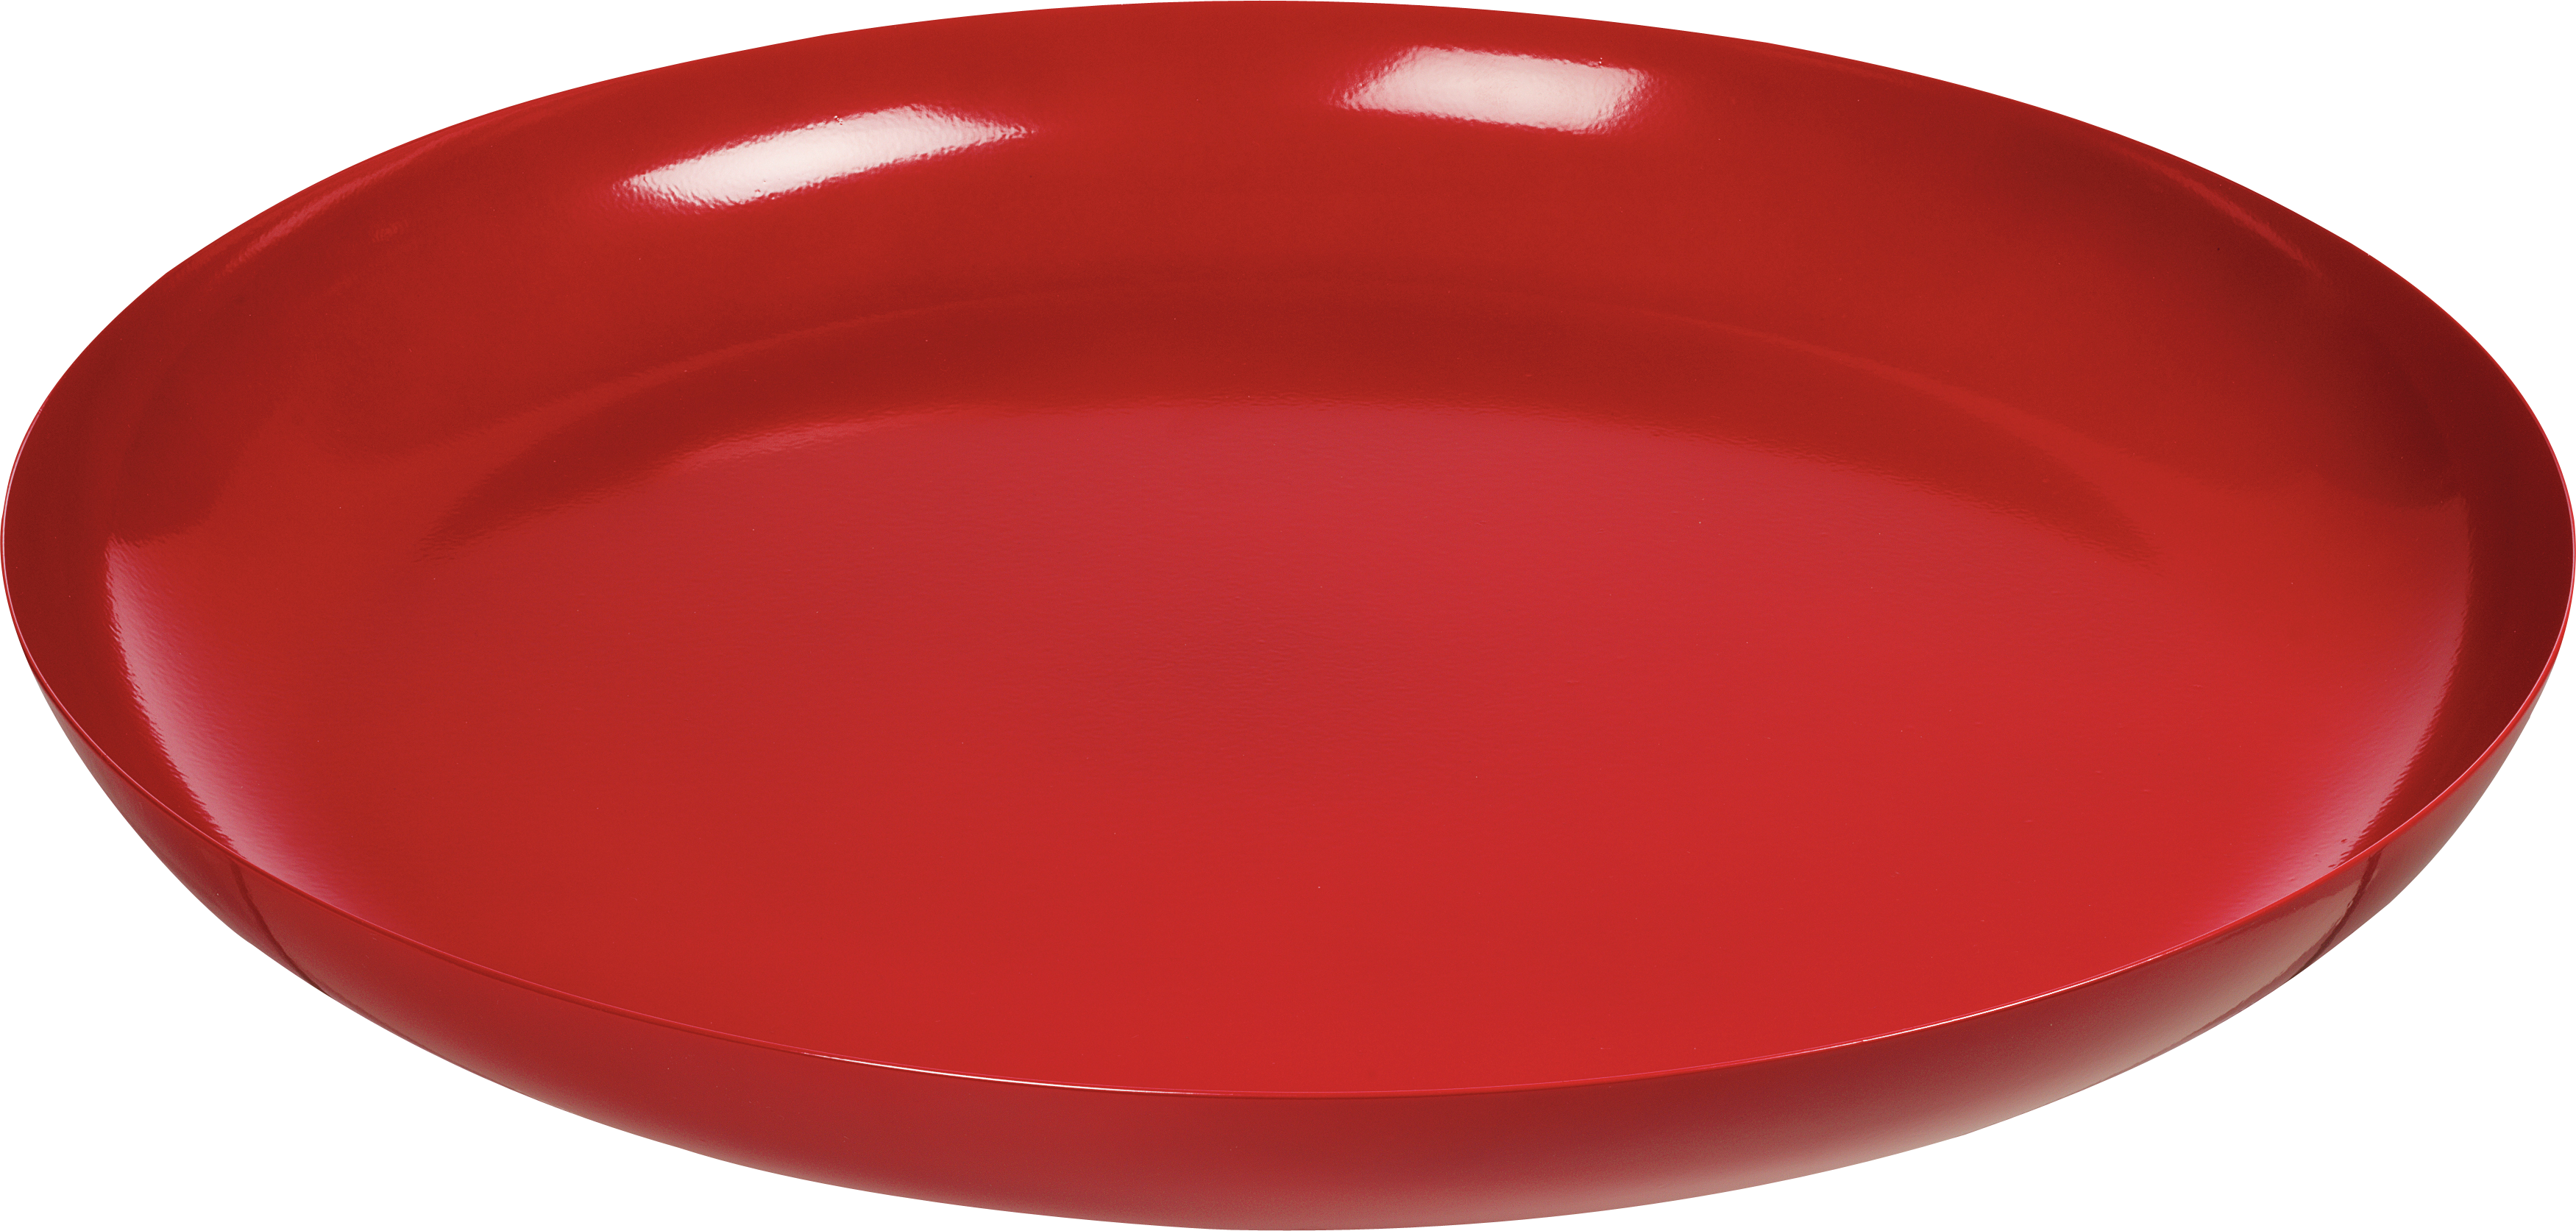 plate .png